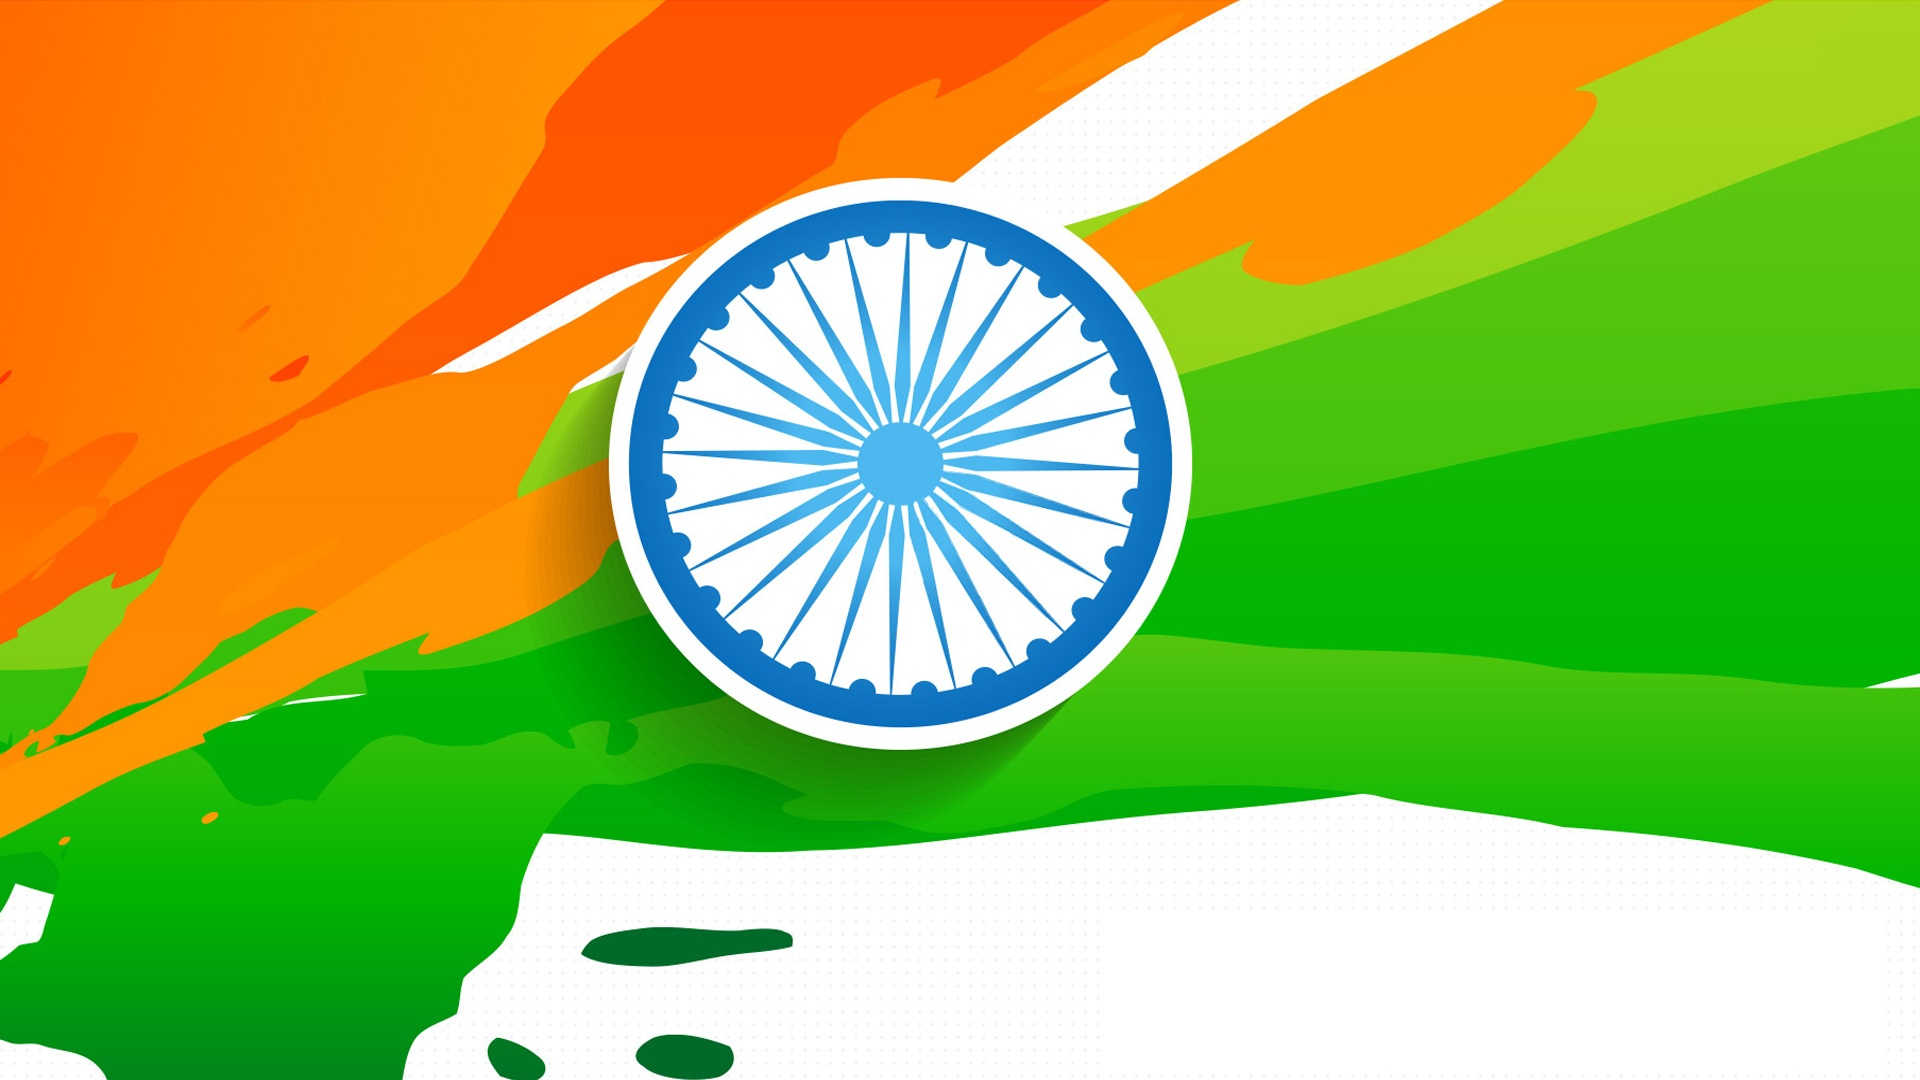 Indian Flags Wallpapers For Desktop